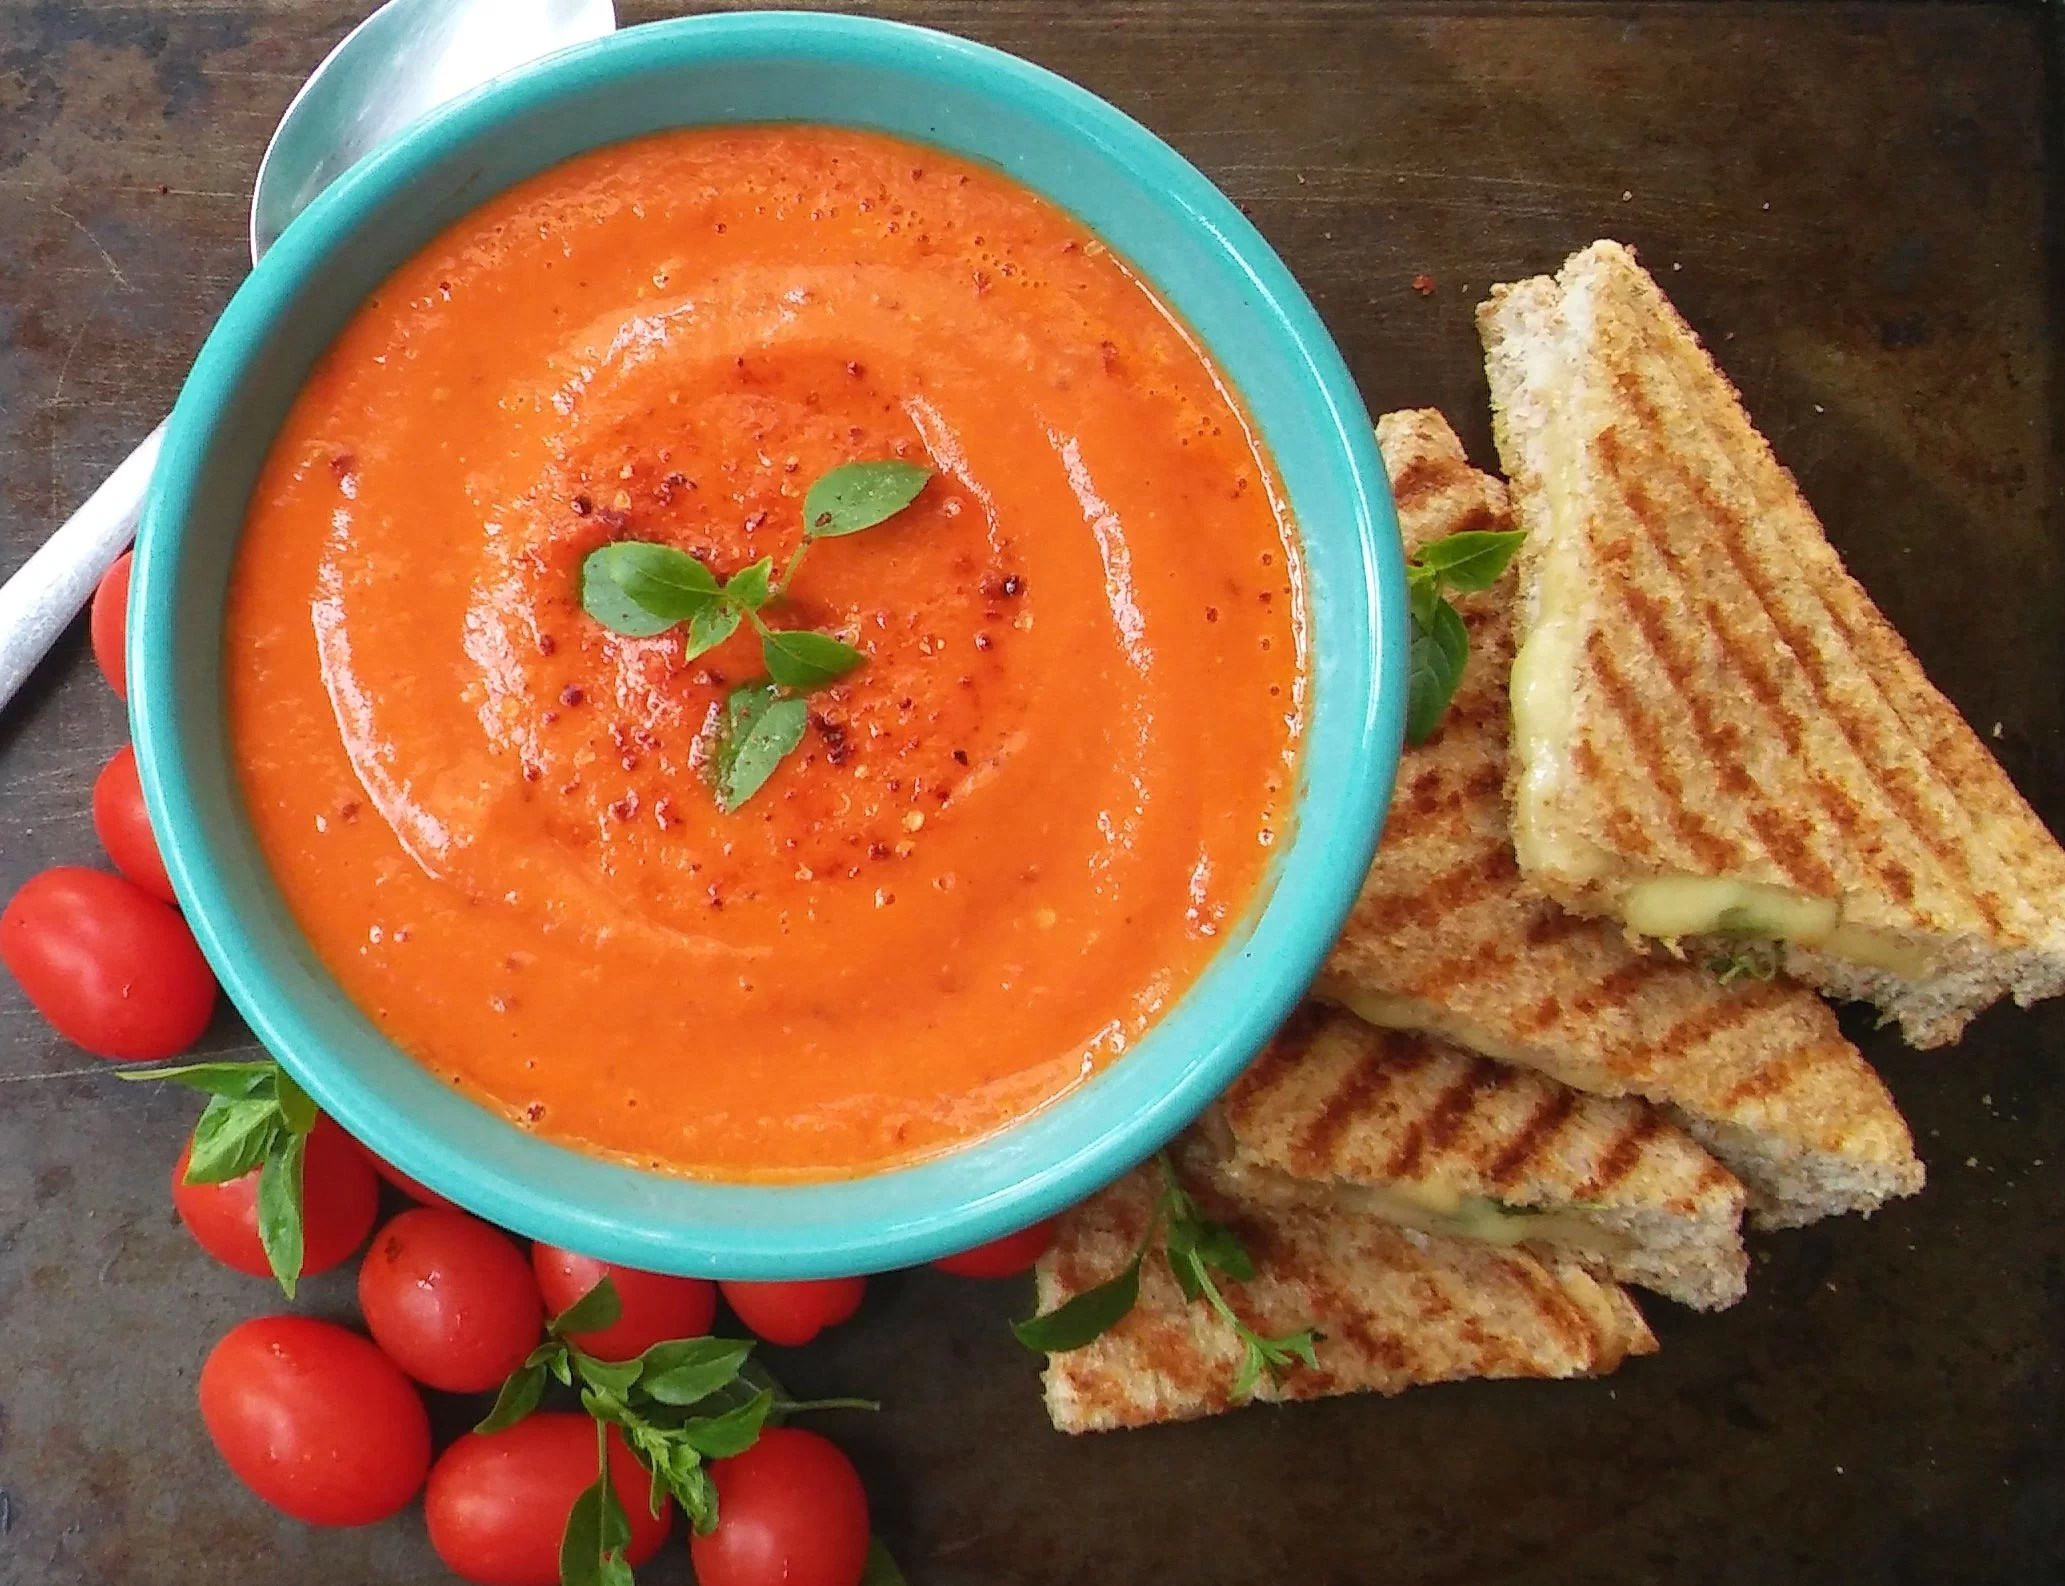 Spiced Tomato Soup with Grilled smoked Mozzarella and Basil Sandwiches